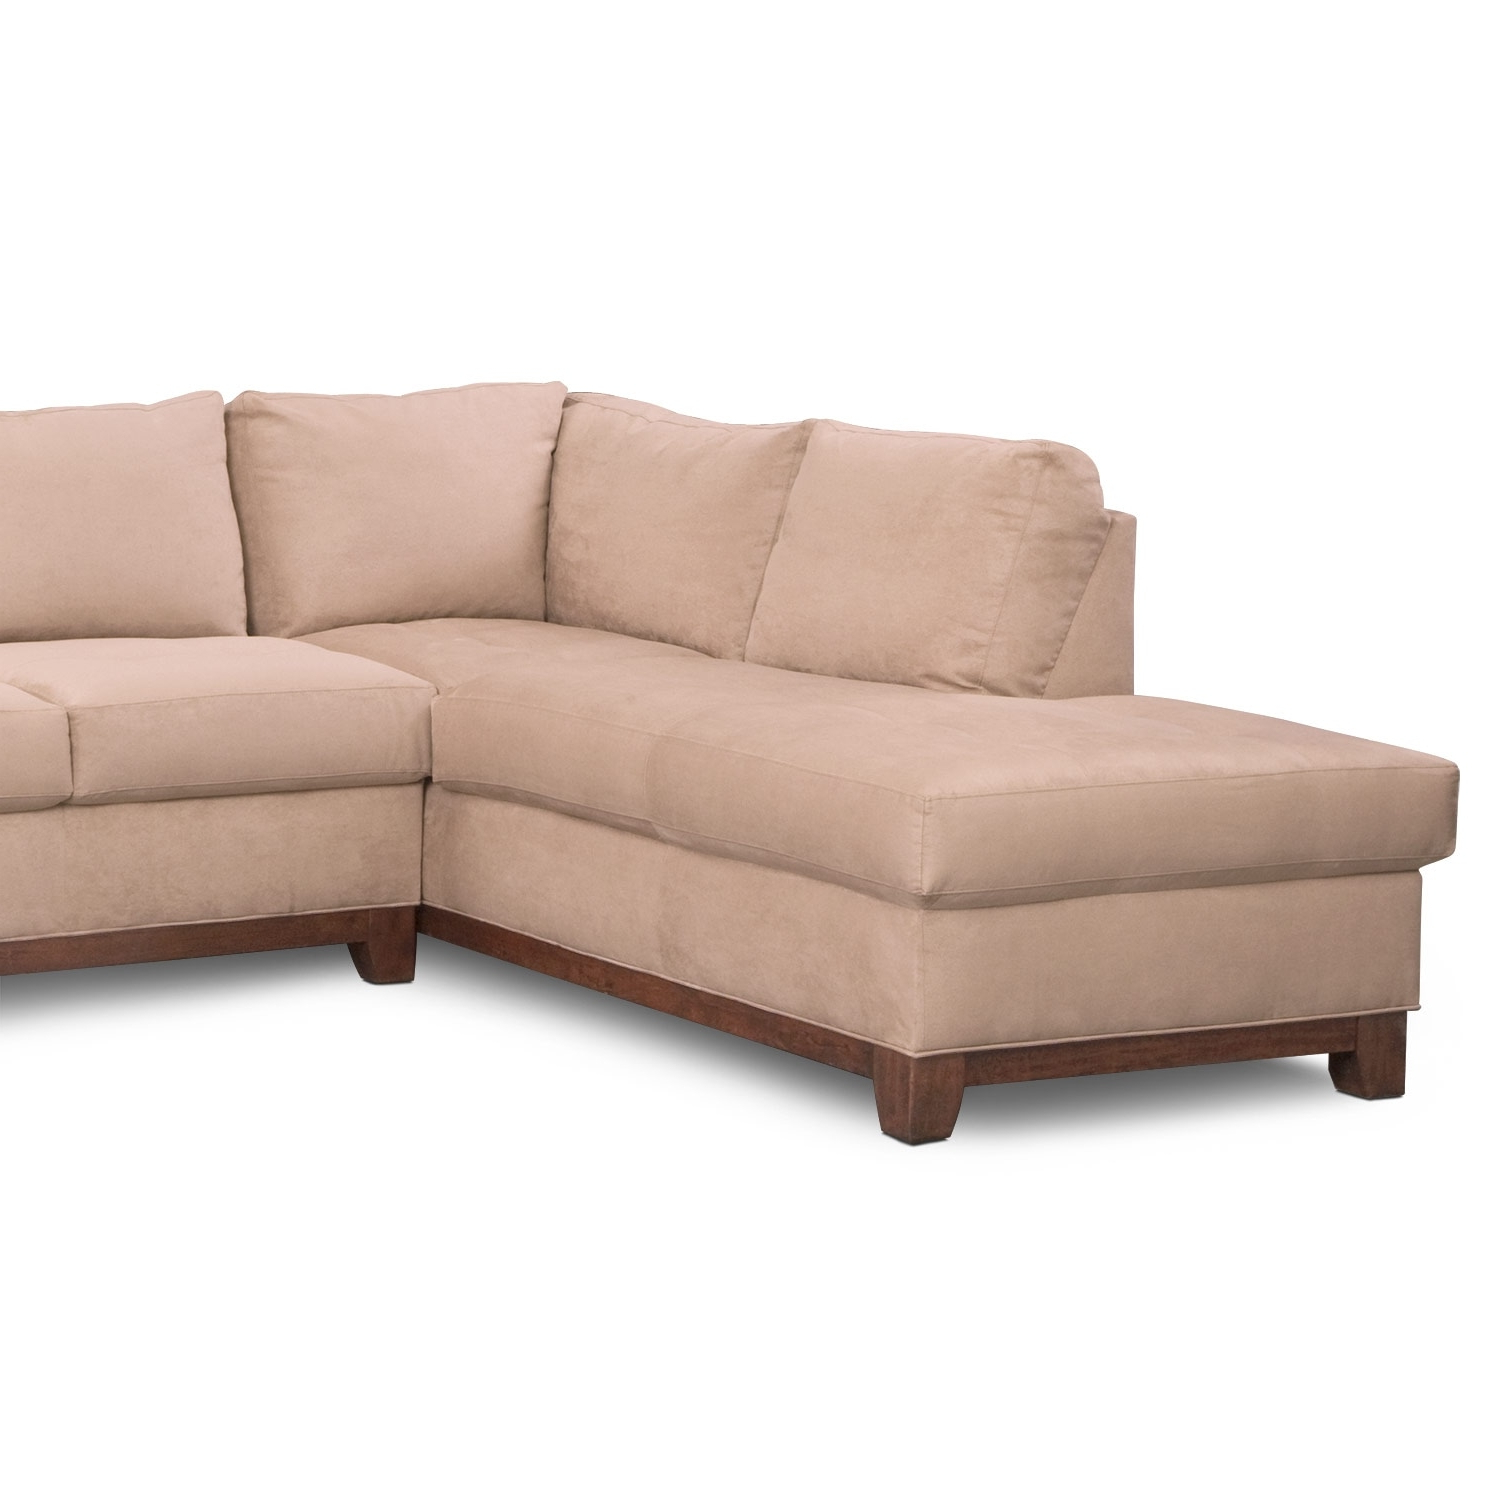 2018 Arrowmask 2 Piece Sectionals With Sleeper & Left Facing Chaise For Soho 2 Piece Sectional With Chaise (View 12 of 20)